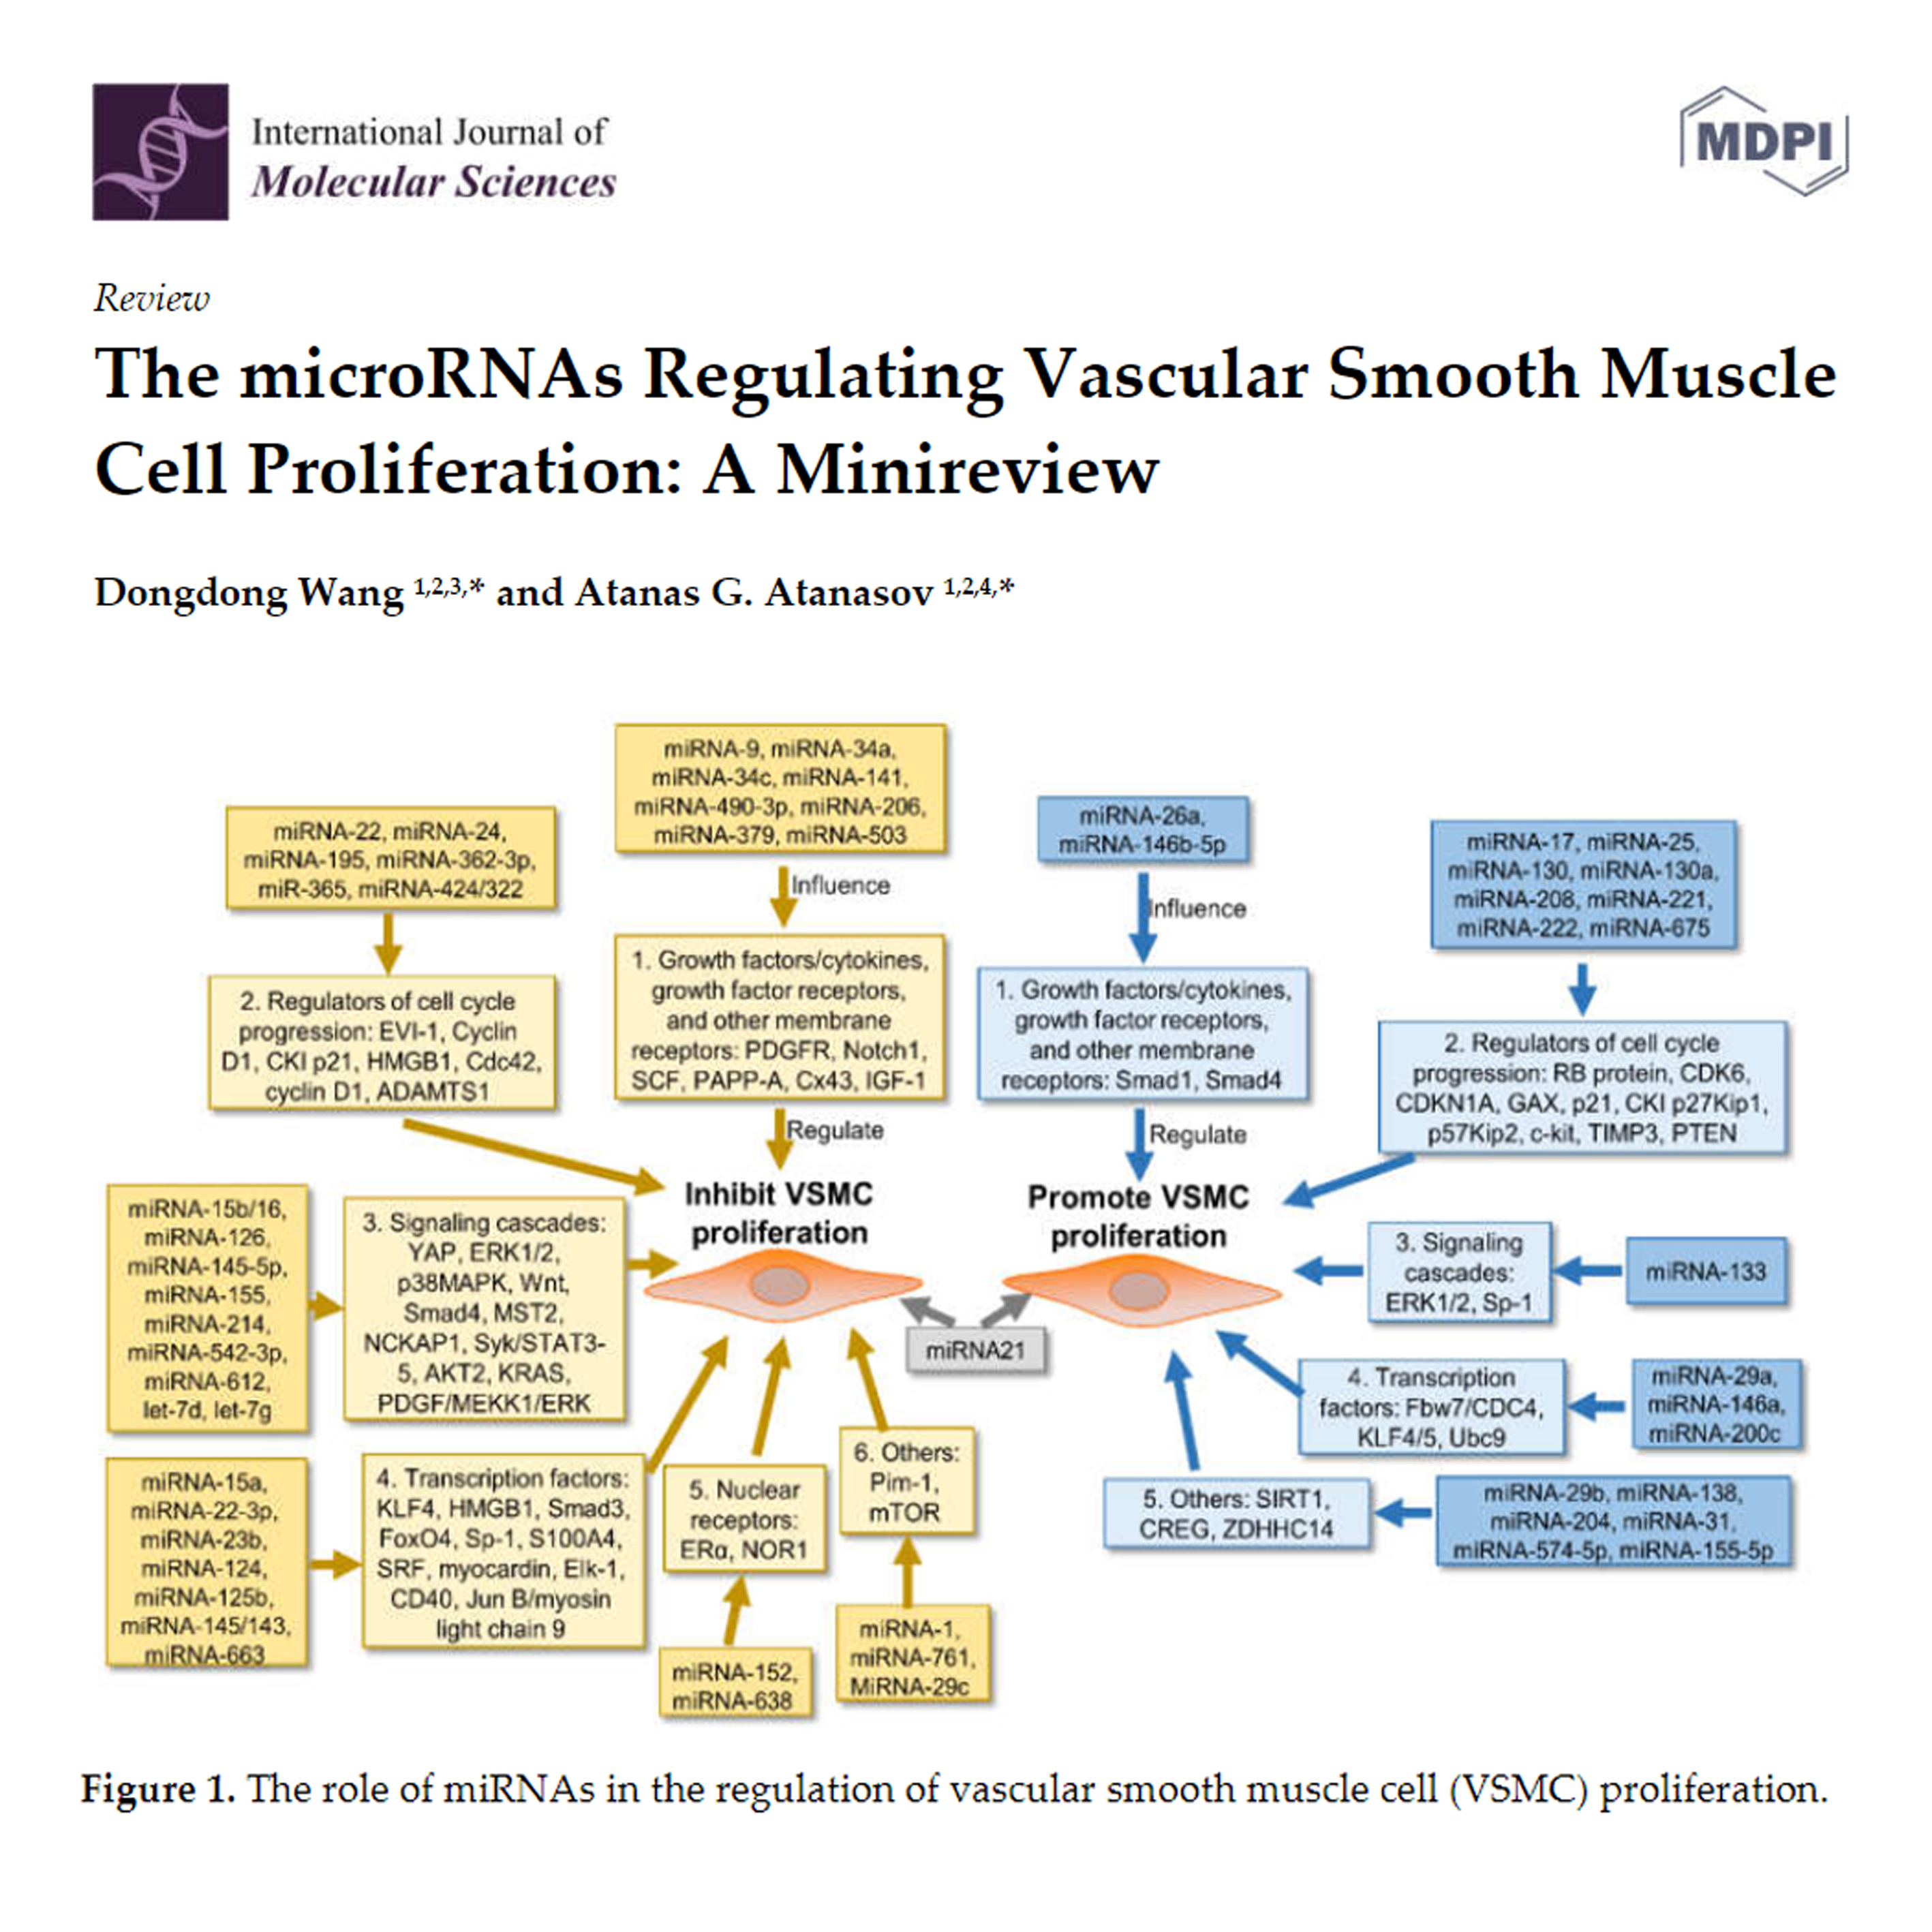 The microRNAs Regulating Vascular Smooth Muscle Cell Proliferation: A Minireview